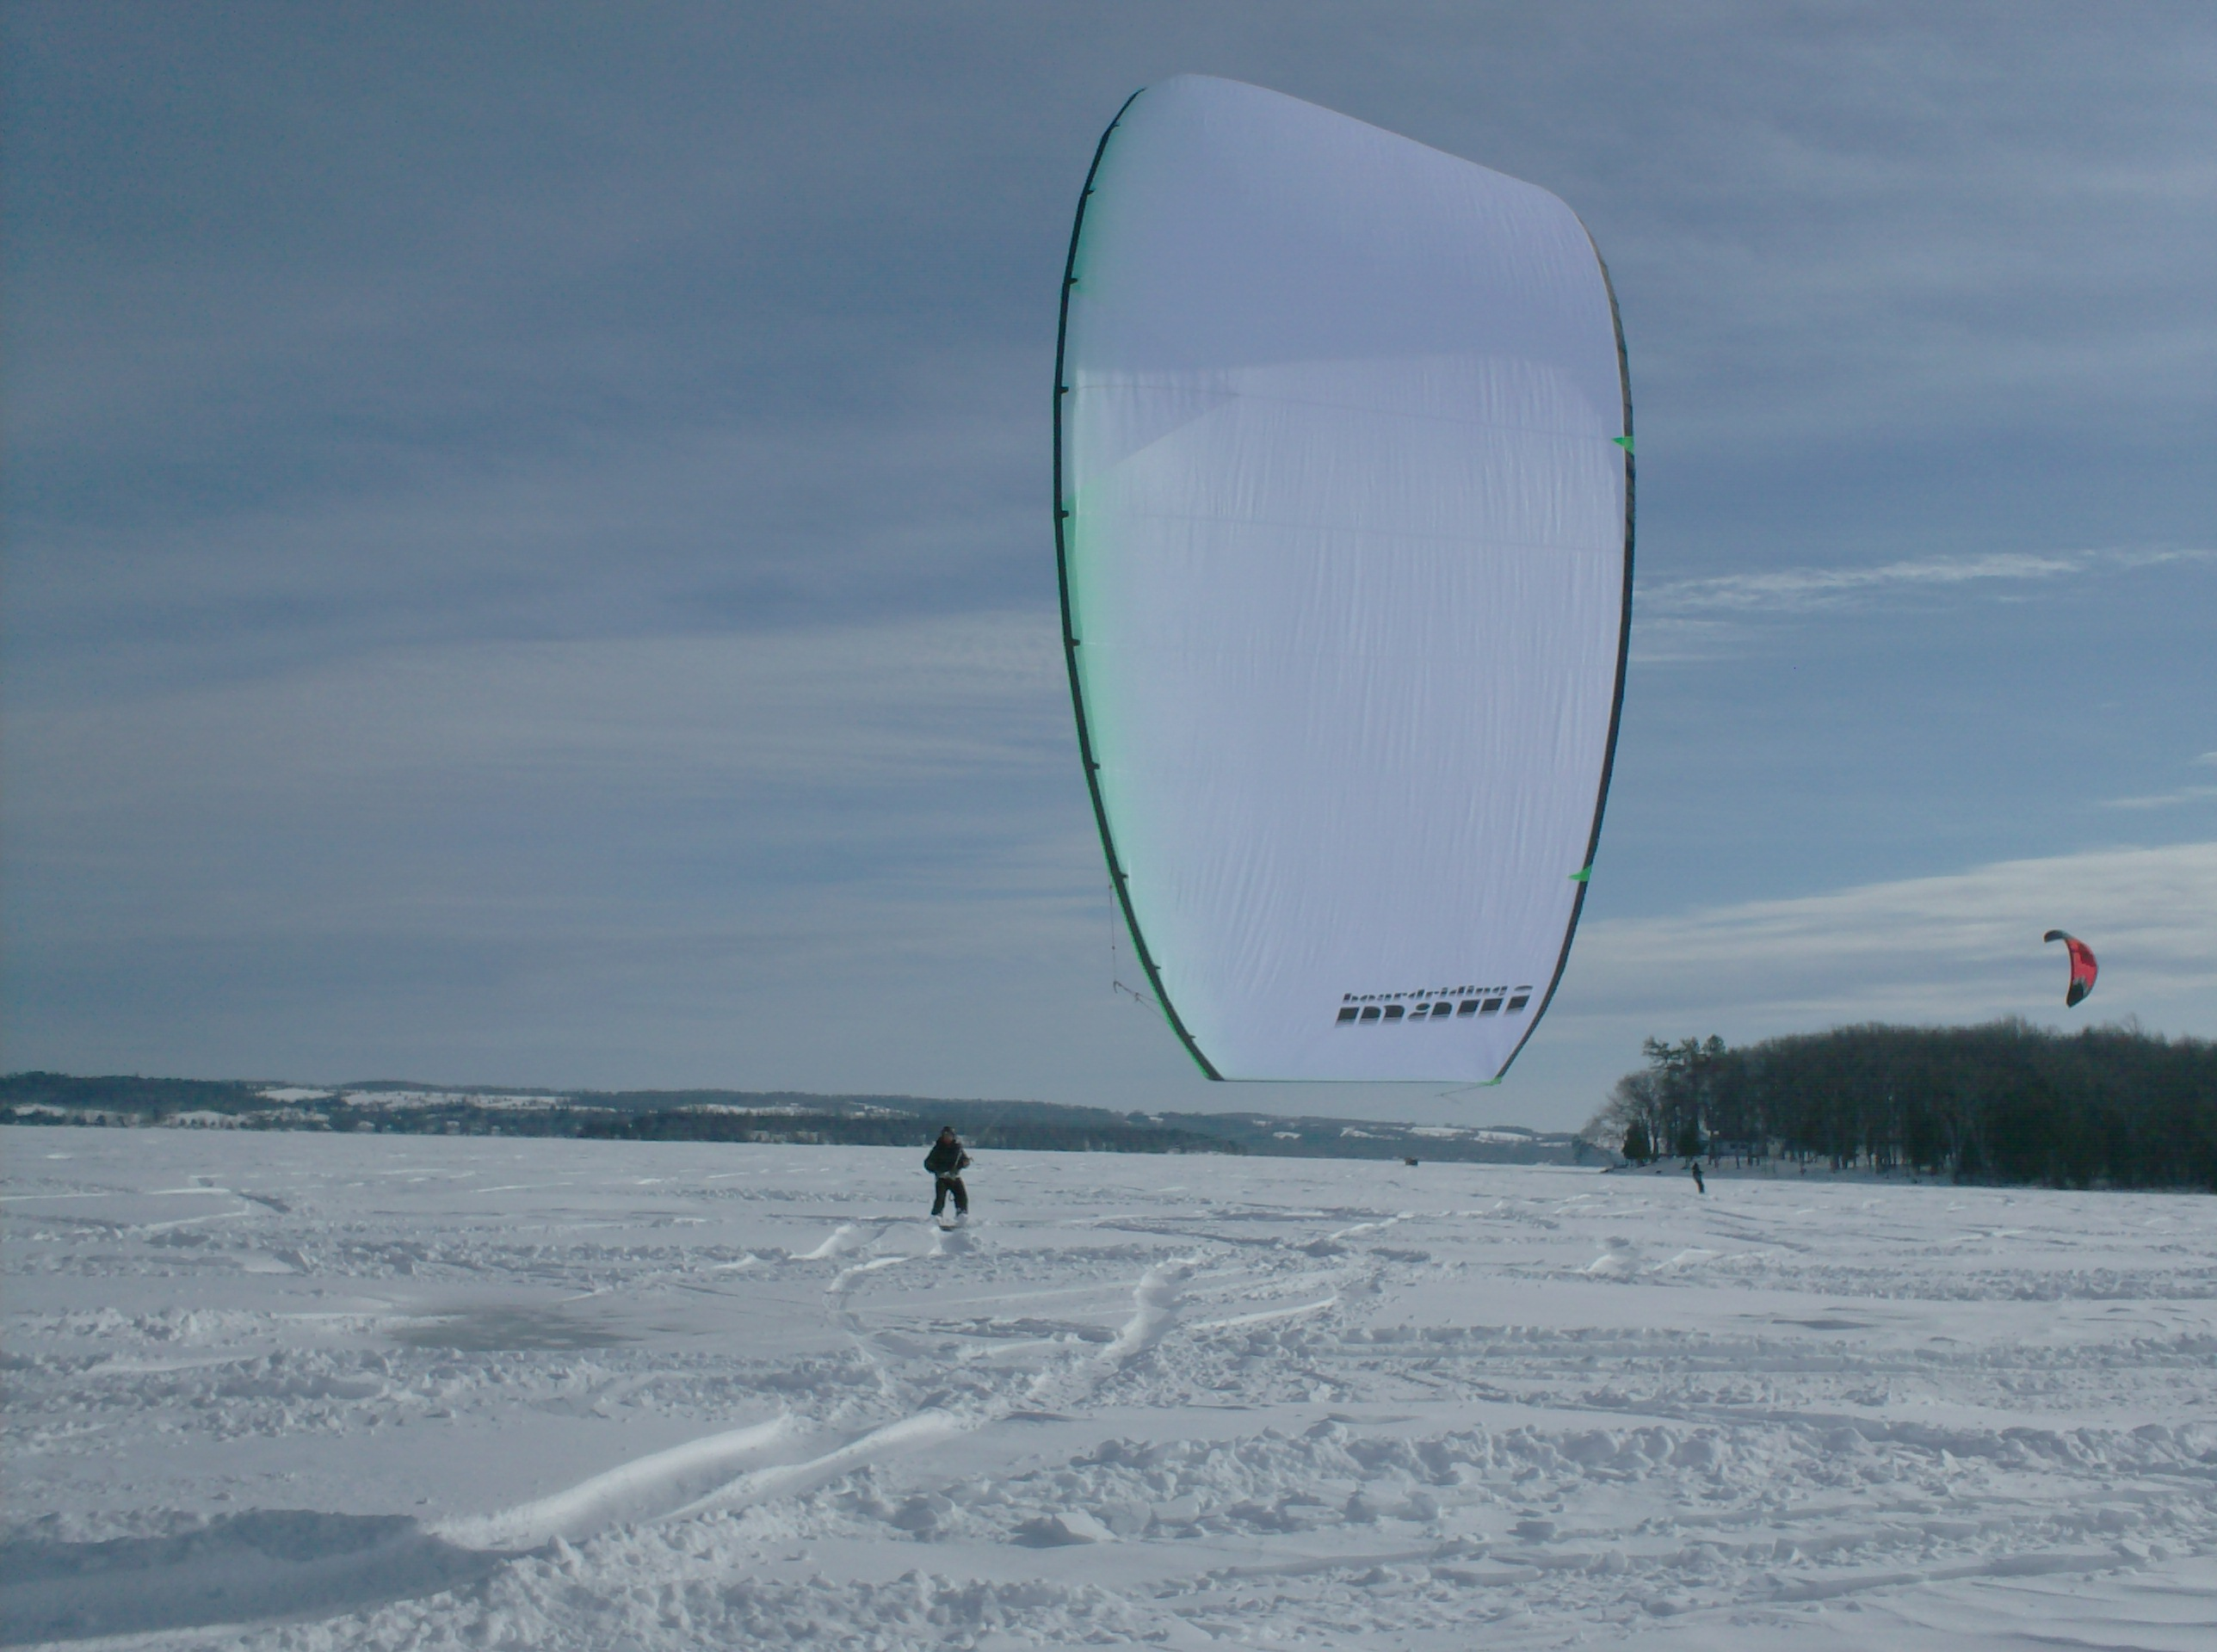 Kiting at Elmhirst's 062.JPG